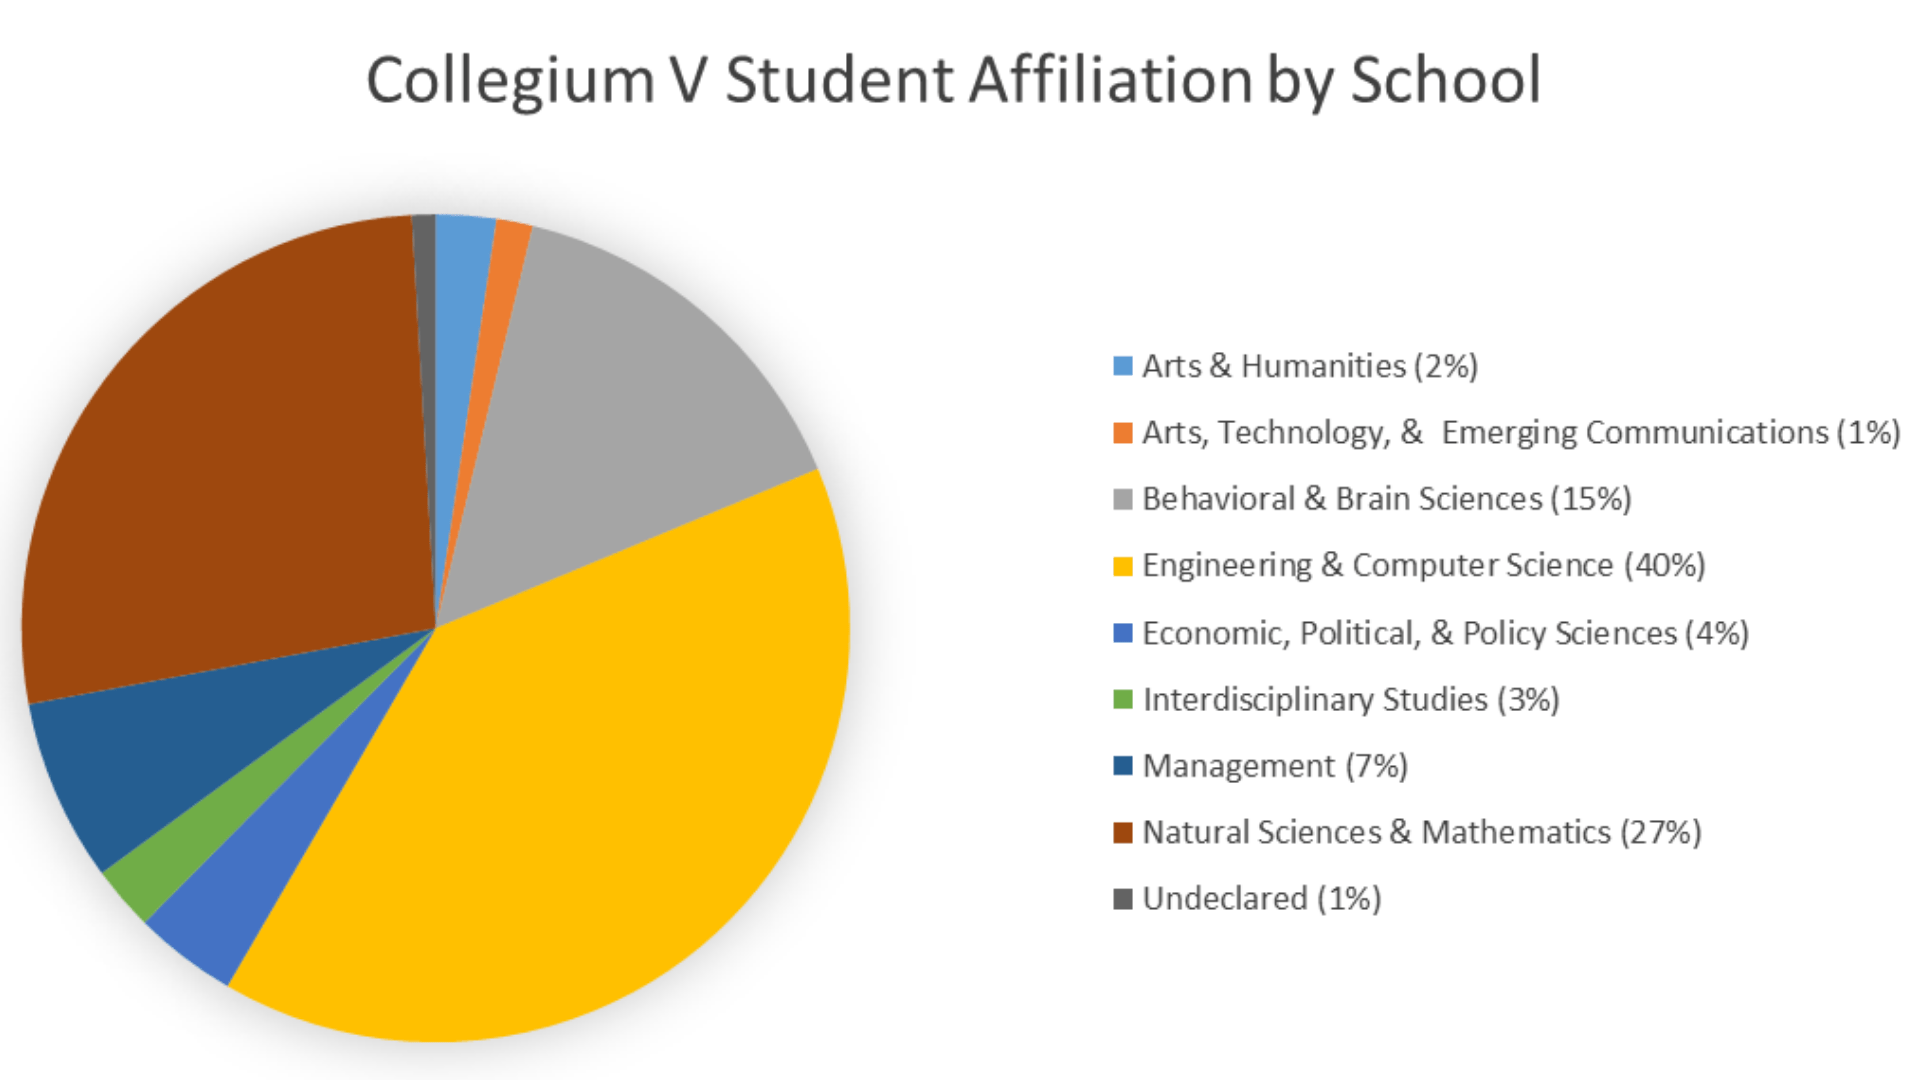 Collegium V Student Affiliation by School. Arts and Humanities: 2%, Arts and Technology: 1%, Behavioral and Brain Sciences: 15%, Engineering and Computer Science: 40%, Economics, Political, and Policy Sciences: 4%, Interdisciplinary Studies: 3%, Management: 7%, Natural Sciences and Mathematics: 27%, Undeclared: 1%.